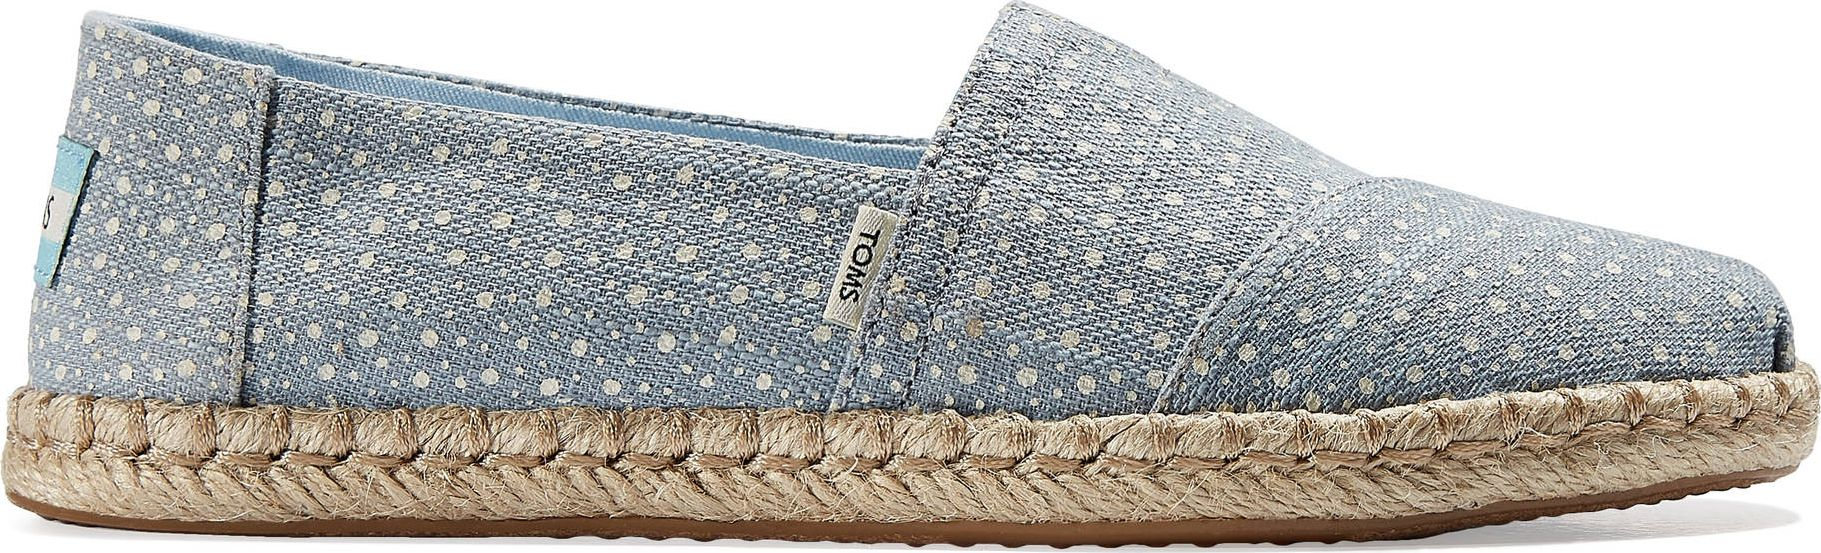 TOMS Sunspots Crossweave Women's Rope Alpargata Sky Blue 37